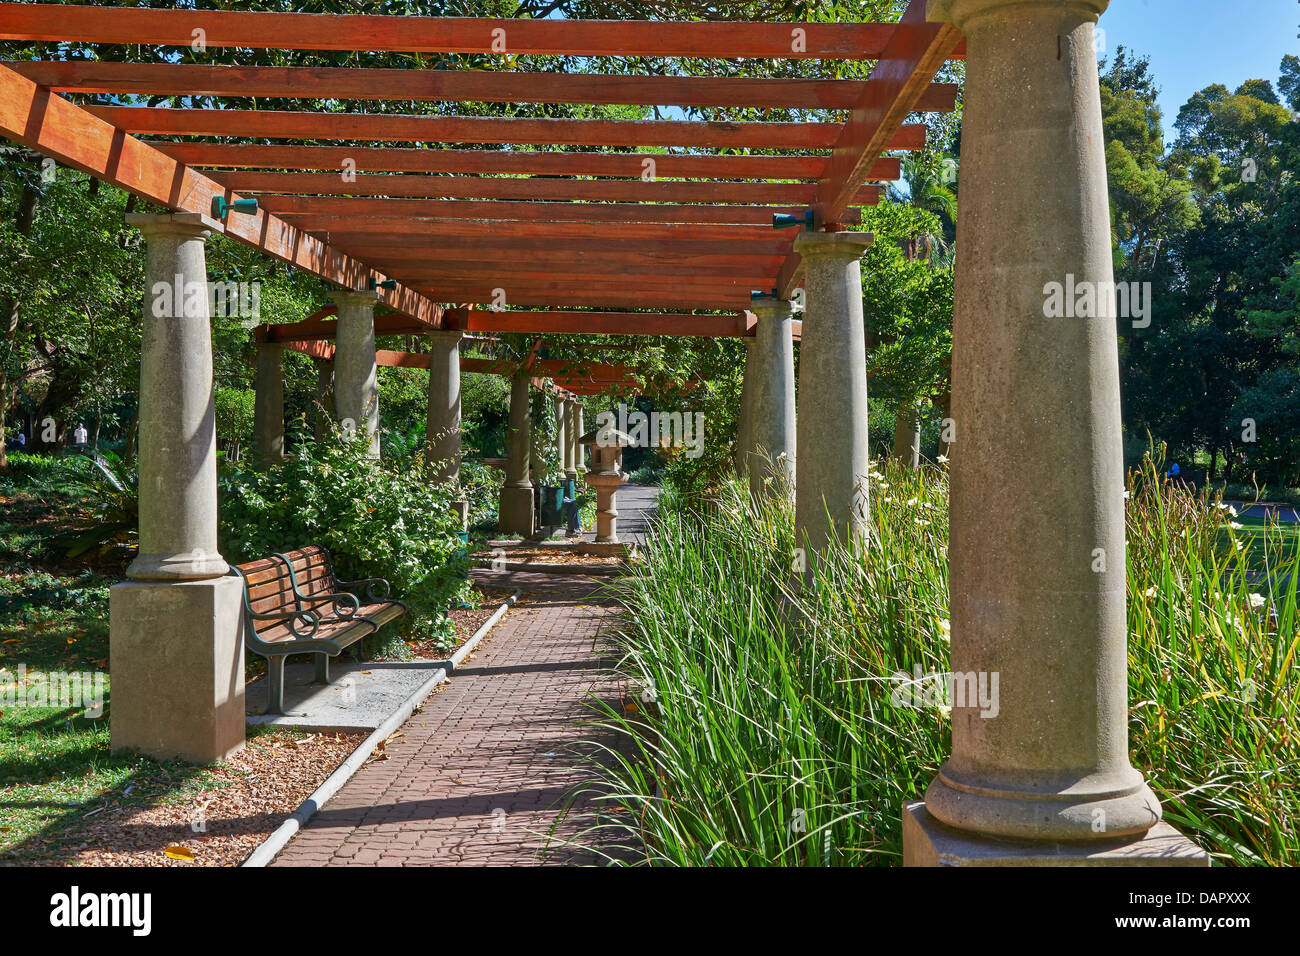 The Company Gardens, Cape Town, Western Cape, South Africa - Stock Image